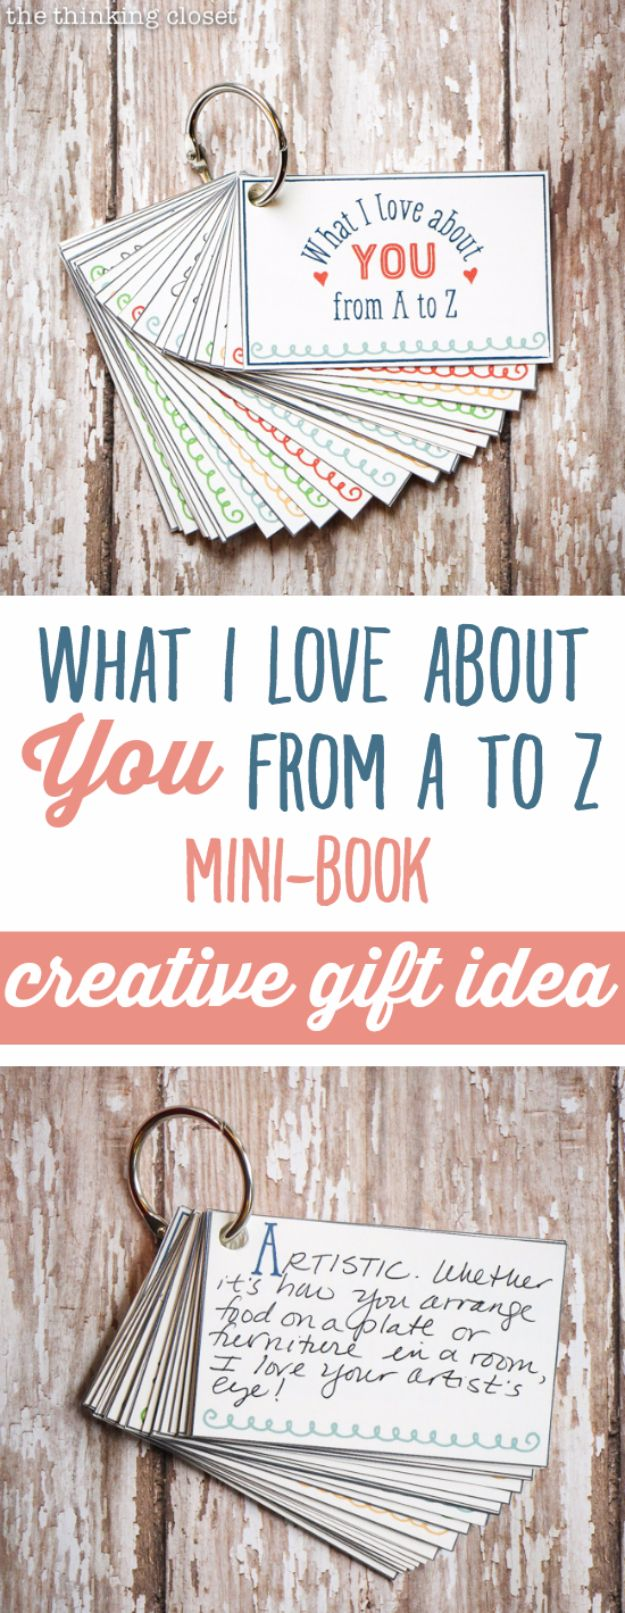 DIY Valentines Day Gifts for Him - What I Love About You From A To Z - Cool and Easy Things To Make for Your Husband, Boyfriend, Fiance - Creative and Cheap Do It Yourself Projects to Give Your Man - Ideas Guys Love These Ideas for Car, Yard, Home and Garage - Make, Don't Buy Your Valentine